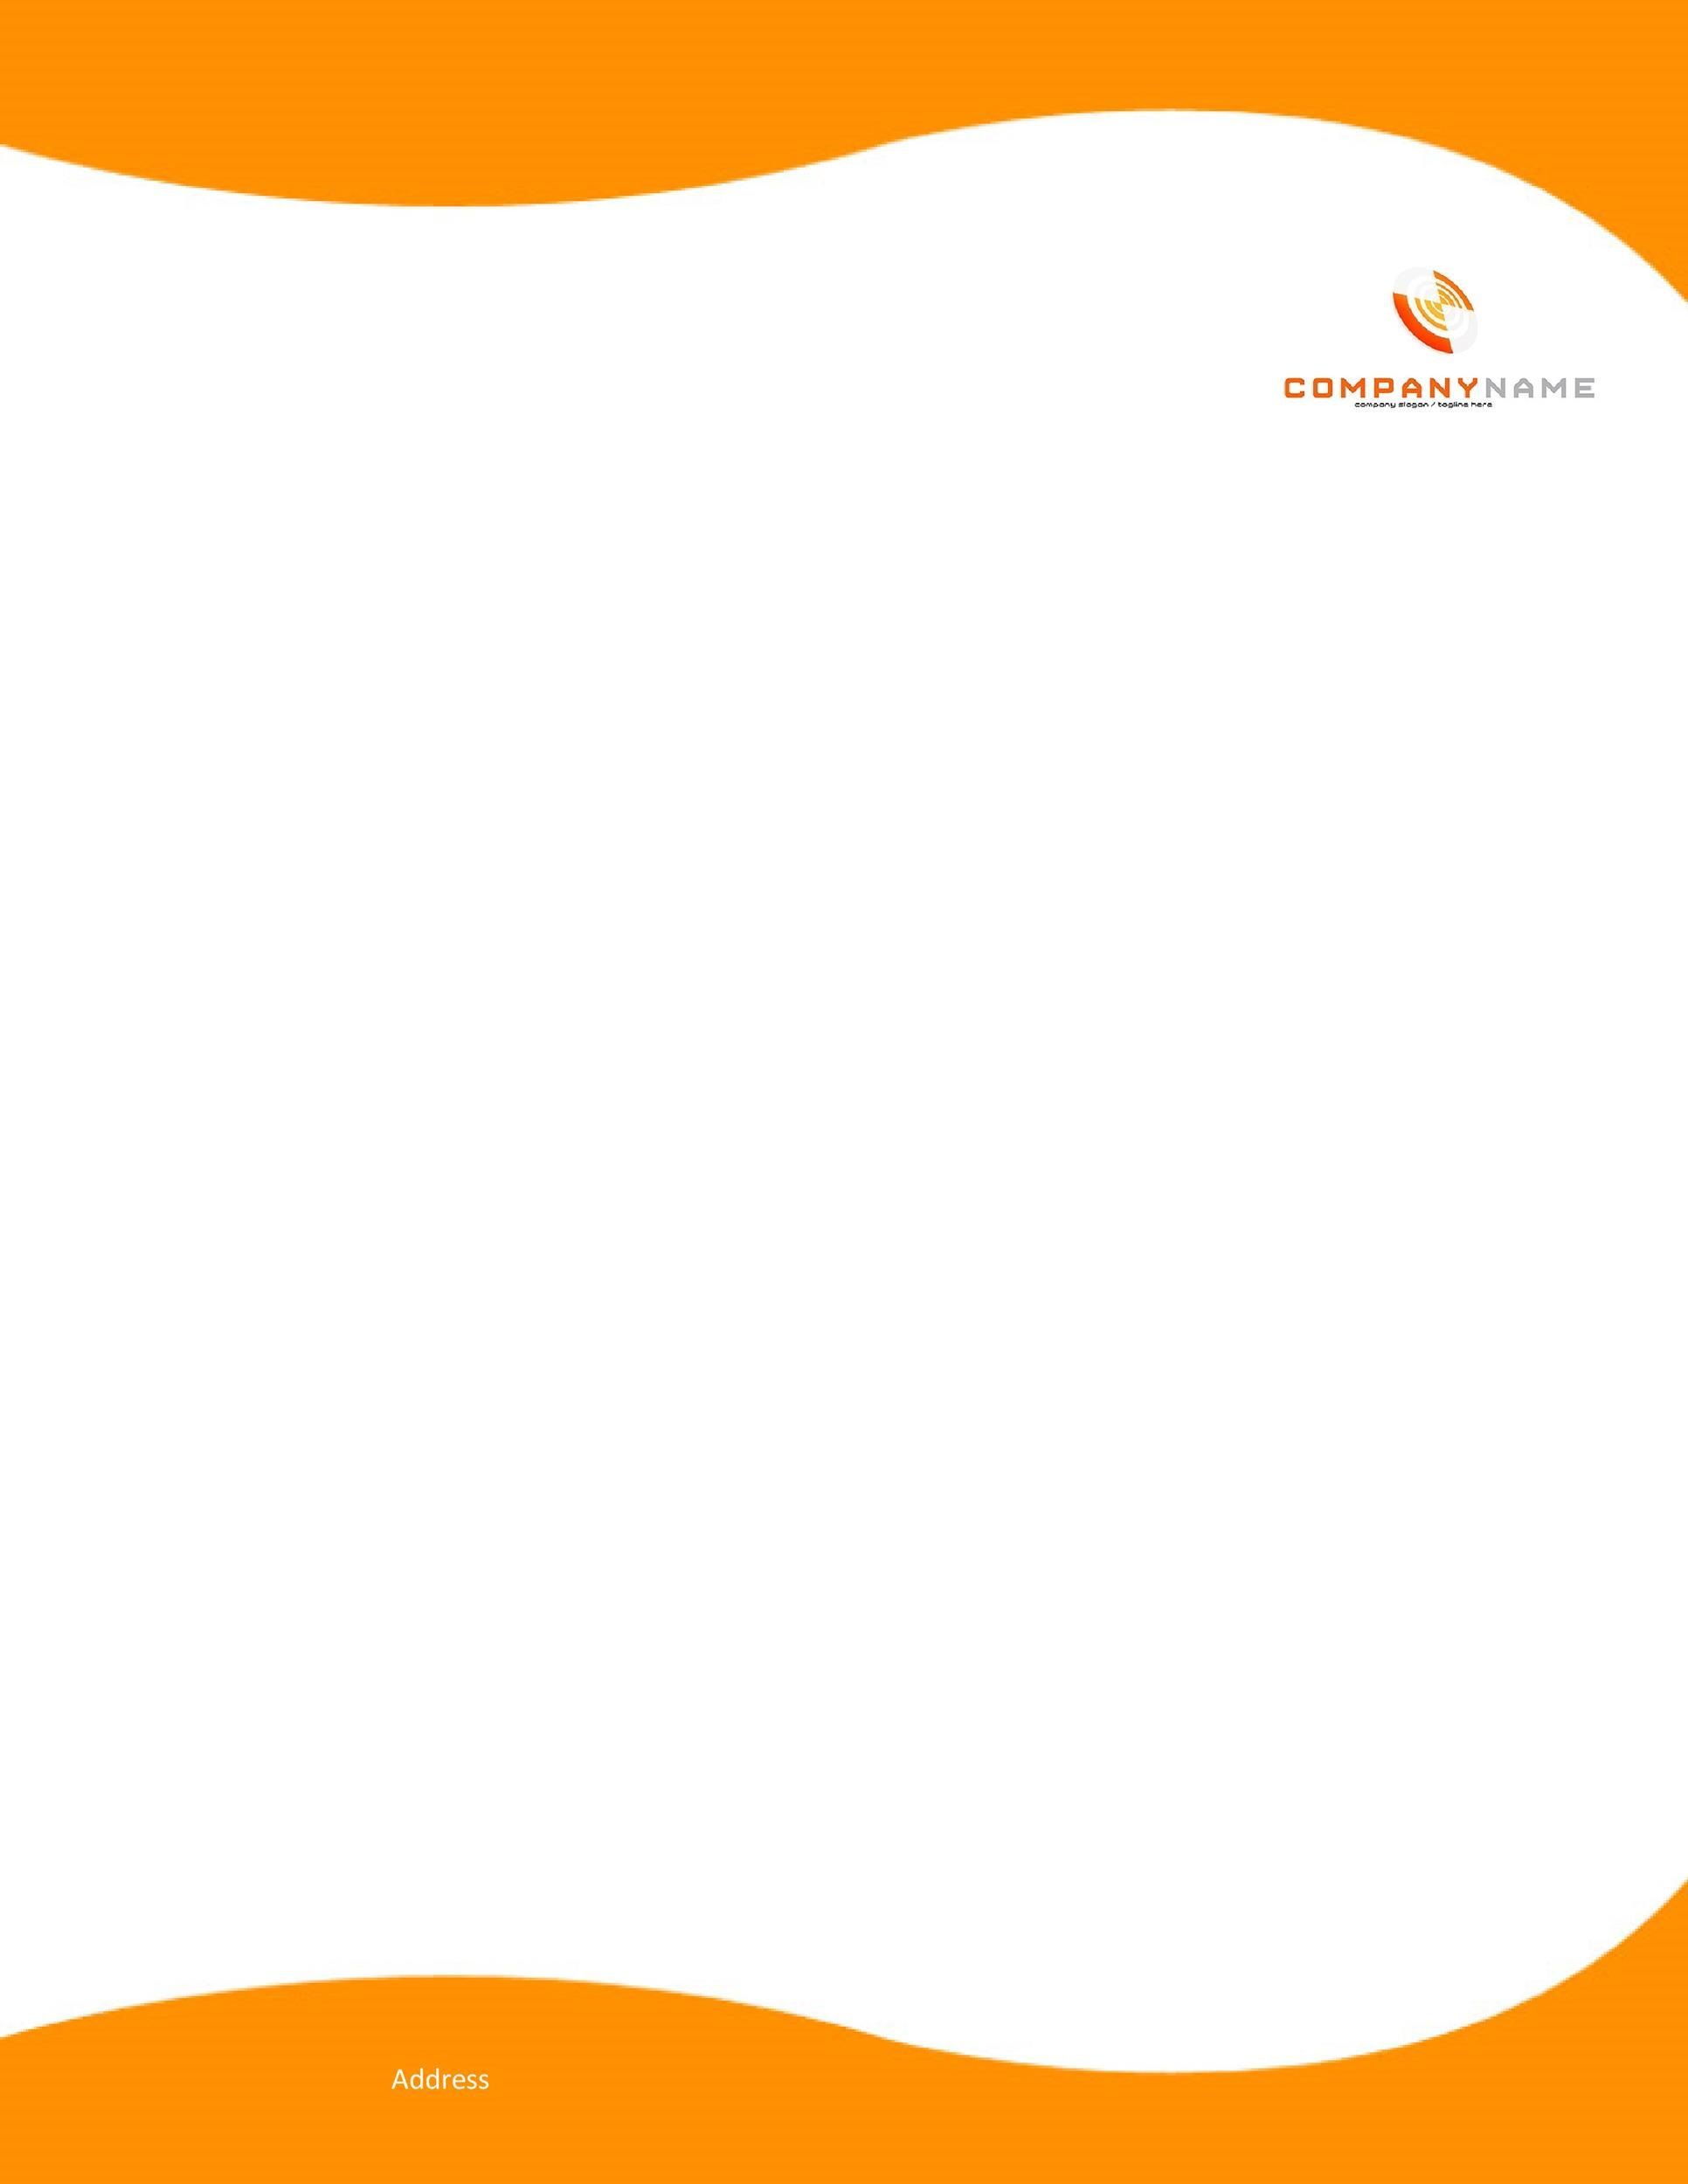 007 Stupendou Letterhead Template Free Download Word Concept  Microsoft Format In Personal RedFull